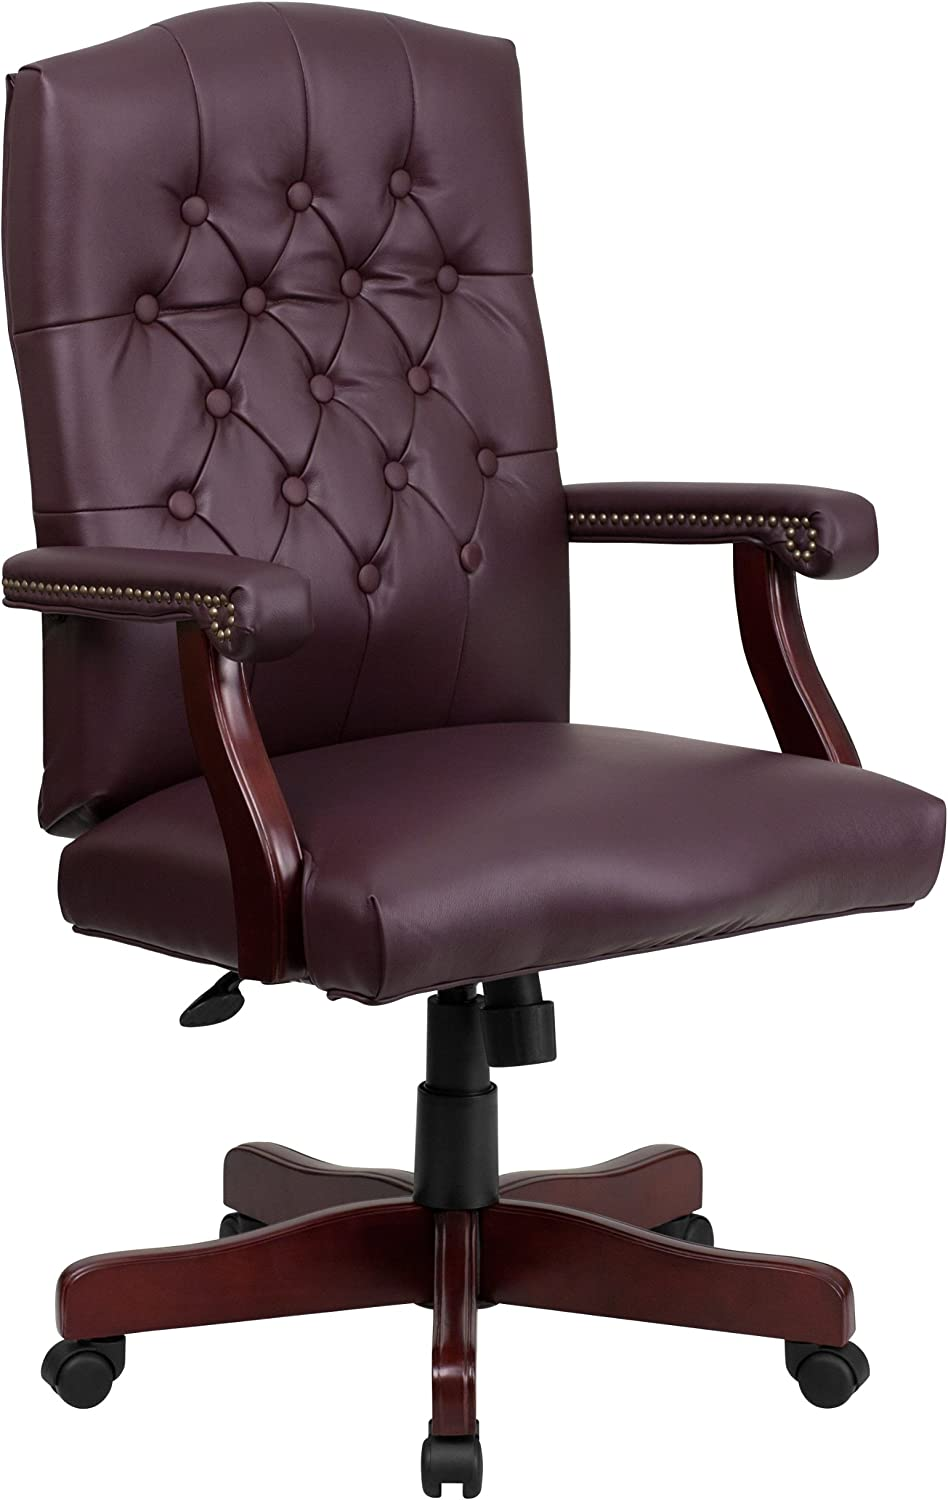 Flash Furniture Martha Washington Burgundy LeatherSoft Executive Swivel Office Chair with Arms